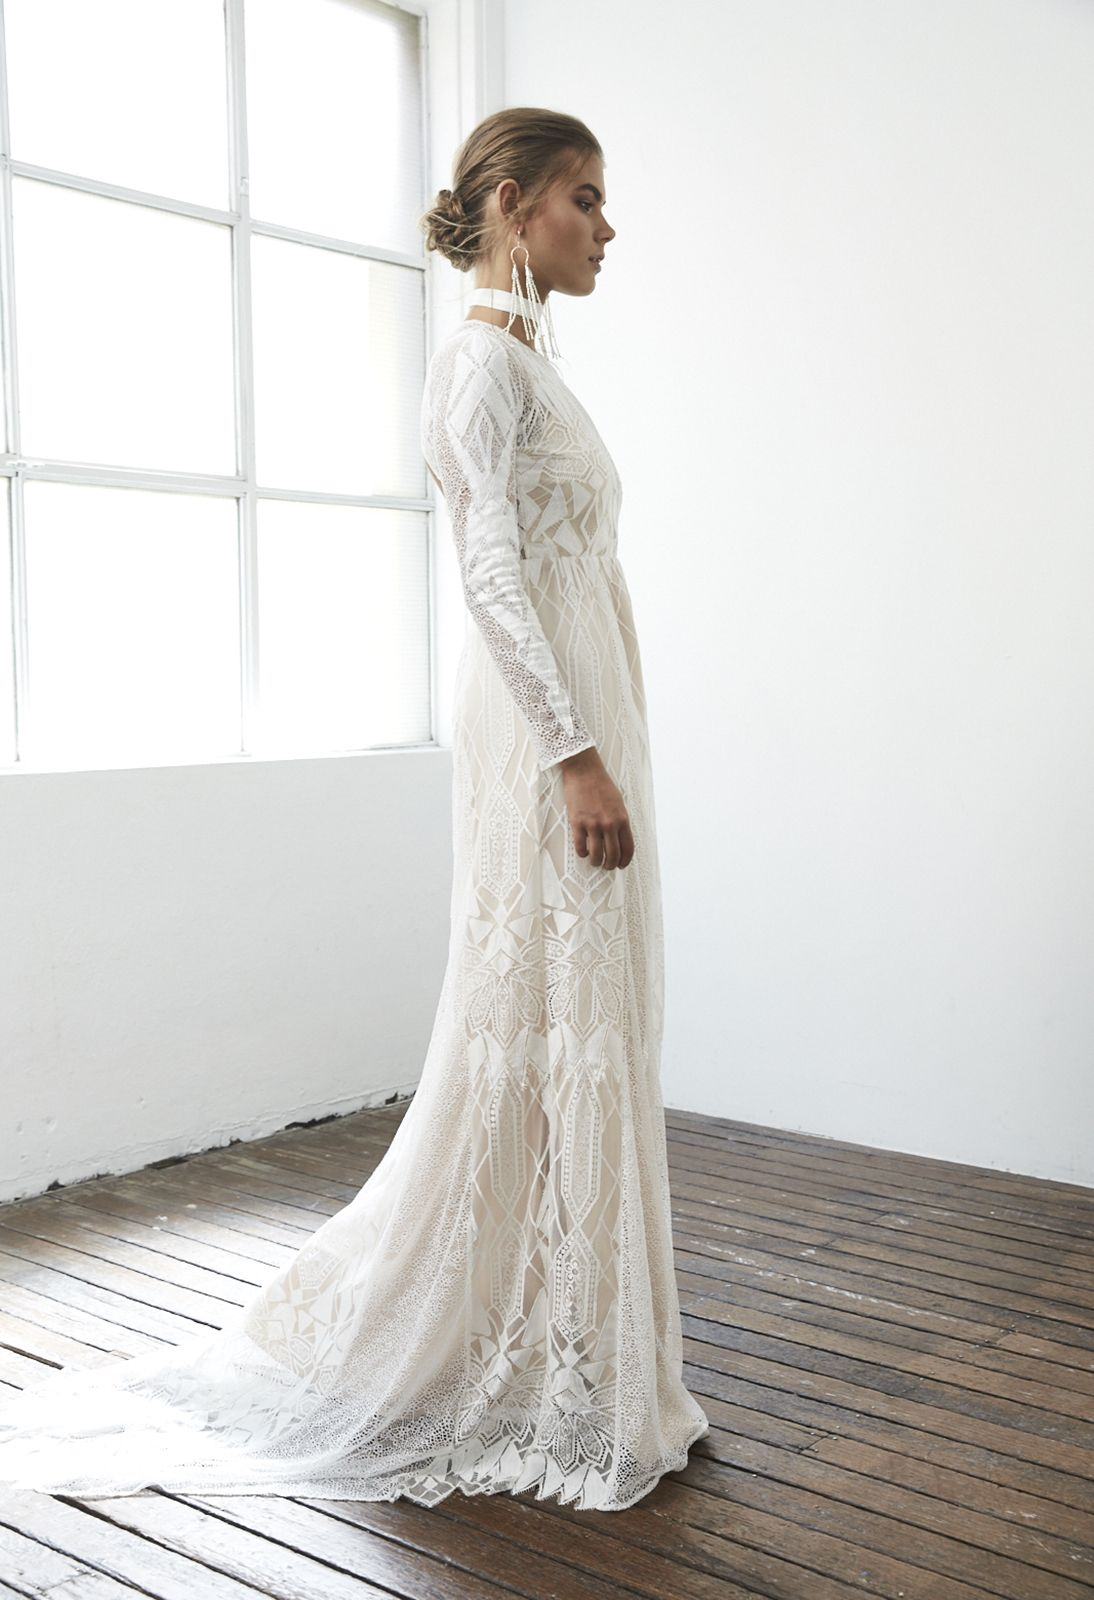 Designed for the ethereal elegant beauty, the Soho gown from our Blanc Collection fuses a contemporary silhouette with soft, yet bold details.